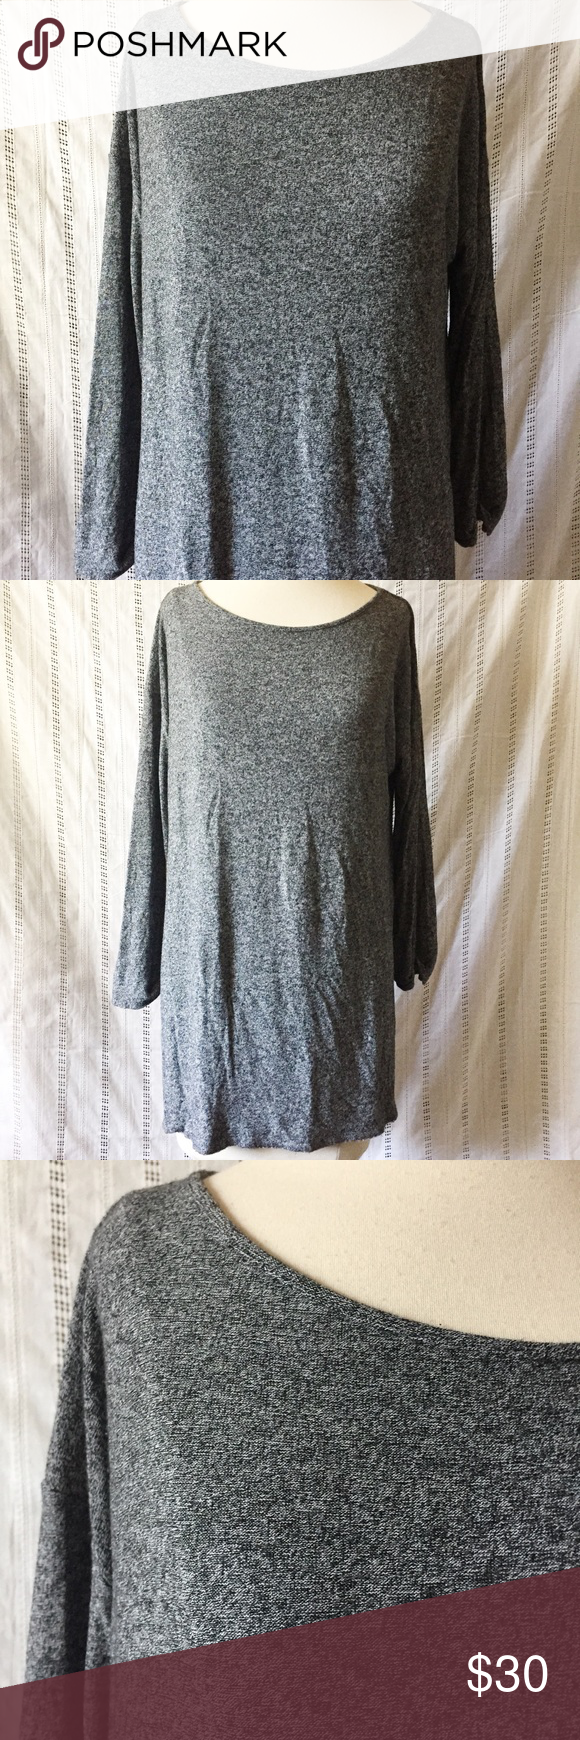 """J.Jill Wearever Collection Heather Gray Top Tunic J.Jill Wearever Collection Heather Gray thin top with 3/4 sleeves and Pleated back. Small. 95% rayon 5% Lycra  In excellent condition Measurements: Shoulder to shoulder: 23"""" Underarm to underarm: 28"""" Sleeve length: 17.5"""" Length: 27"""" J. Jill Tops Tunics"""